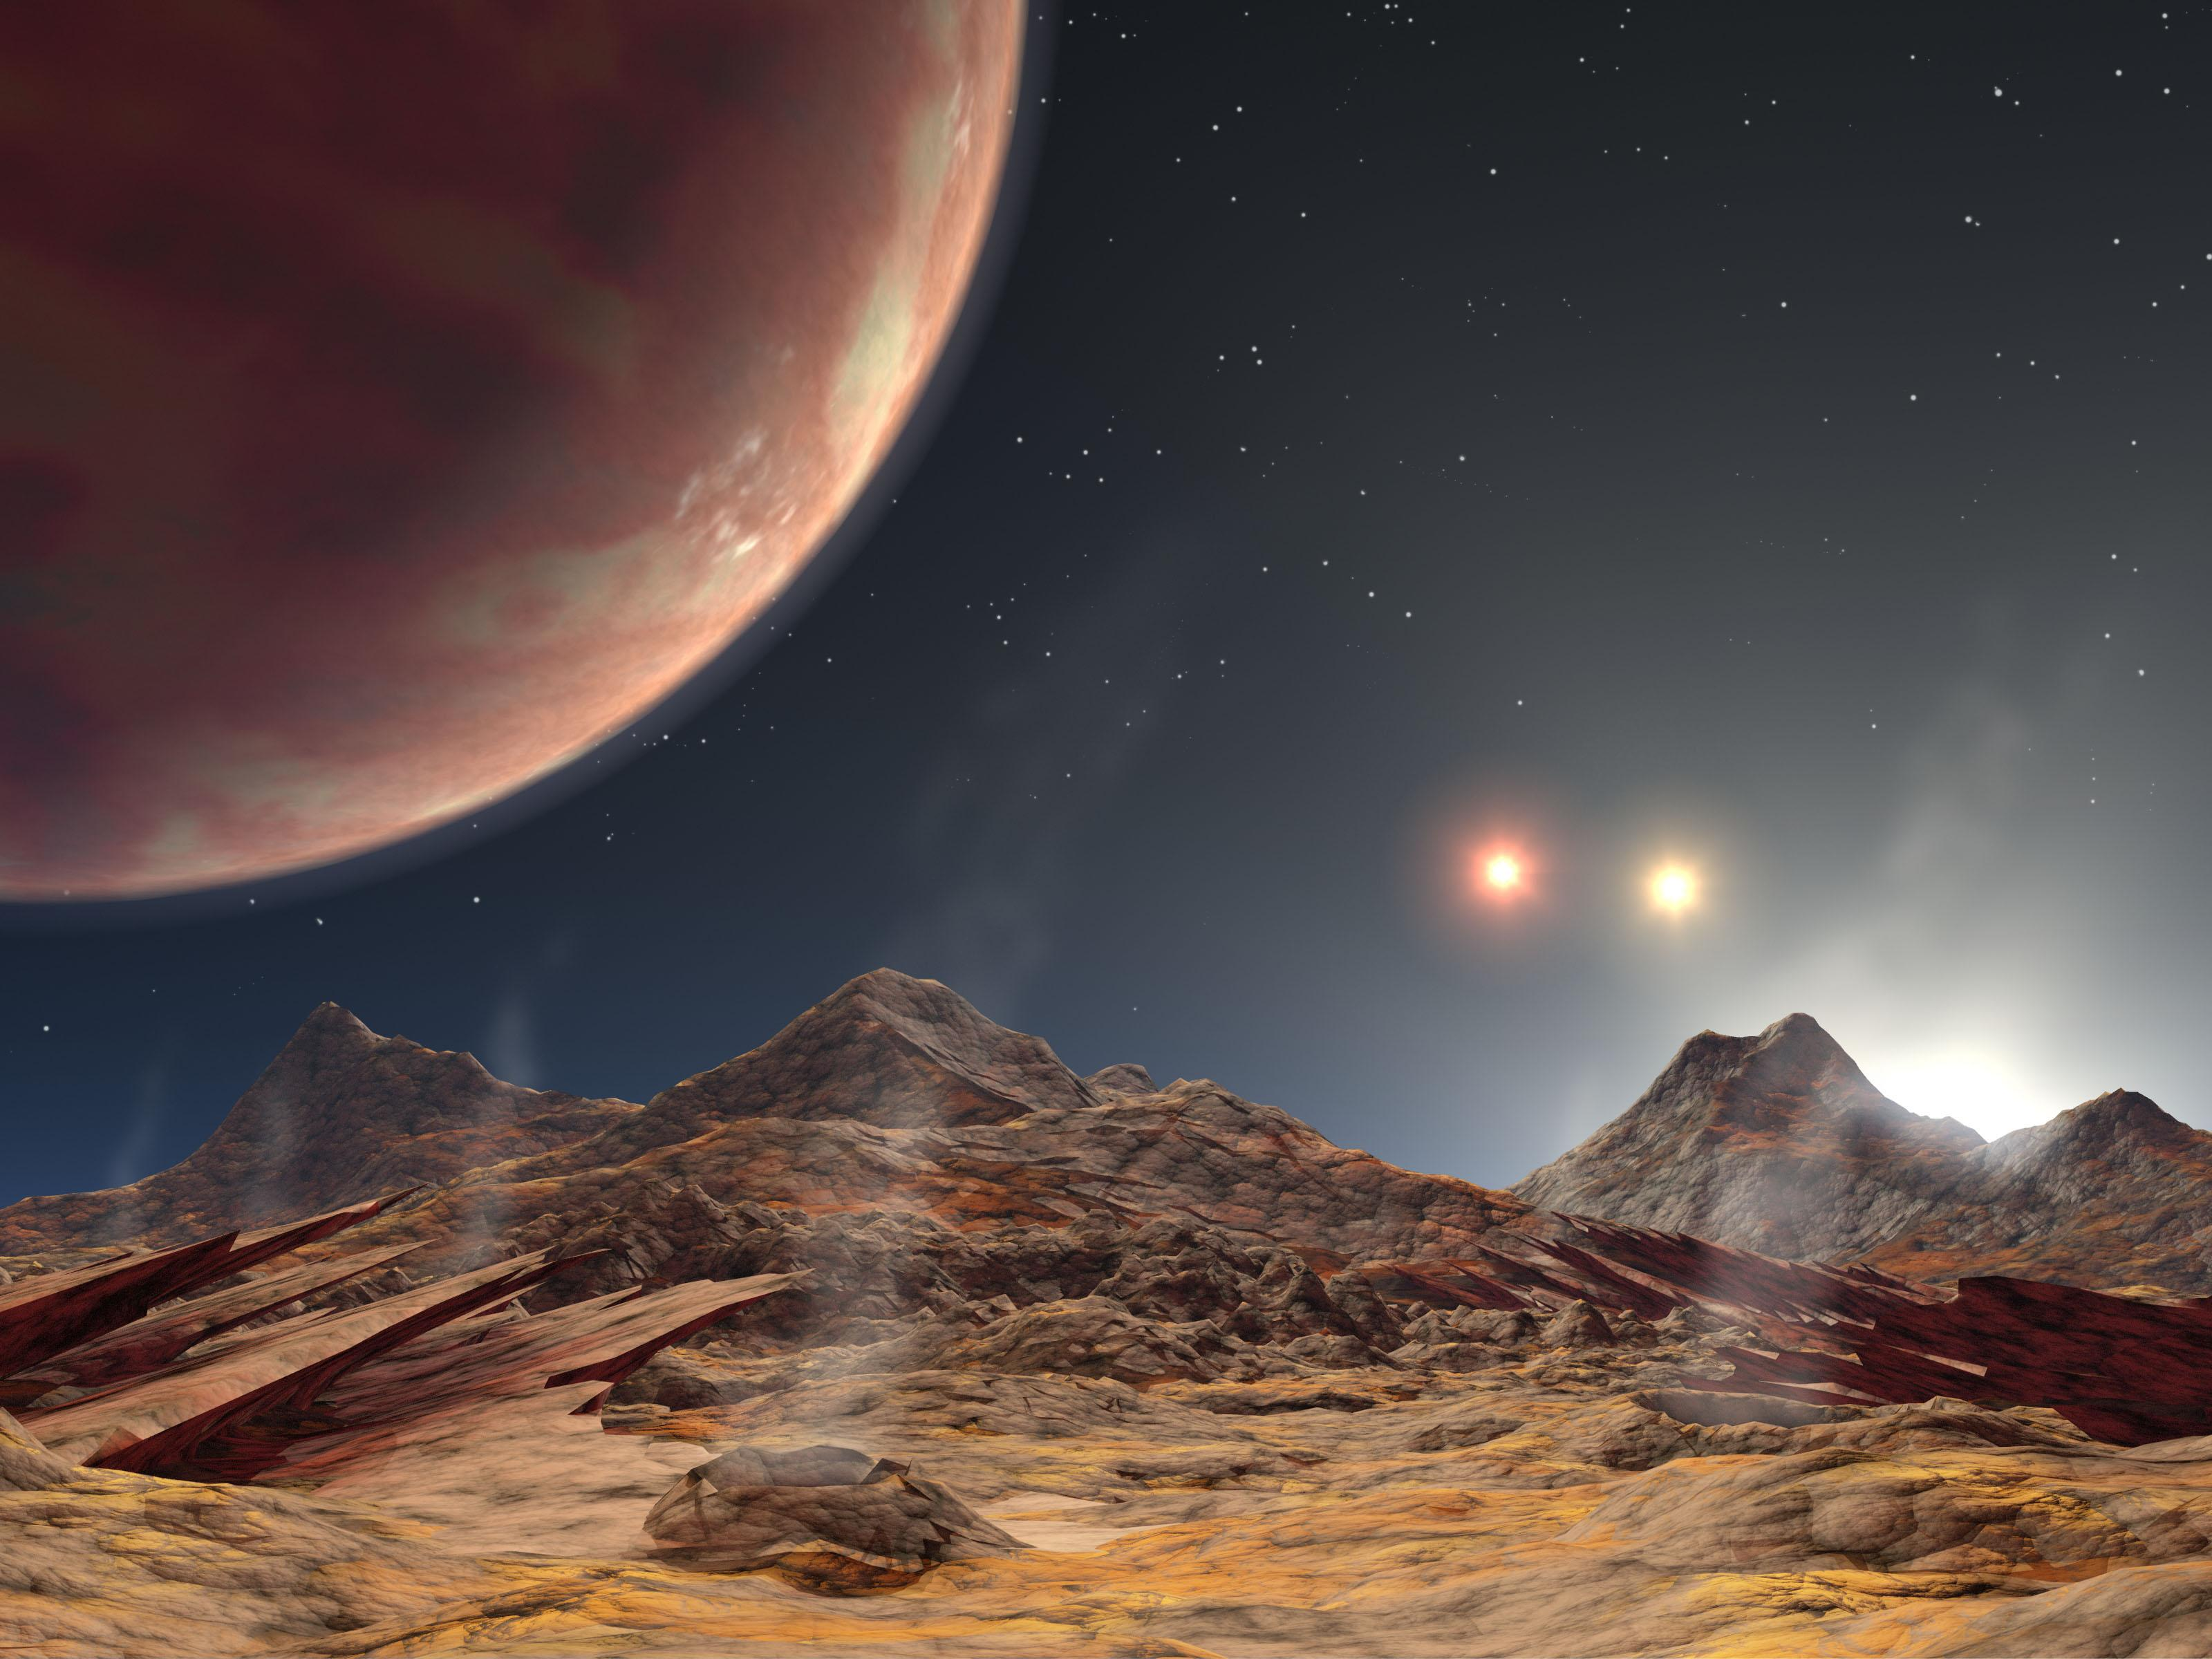 Hunting for Alien Exoplanets with Mobile Astronomy Apps